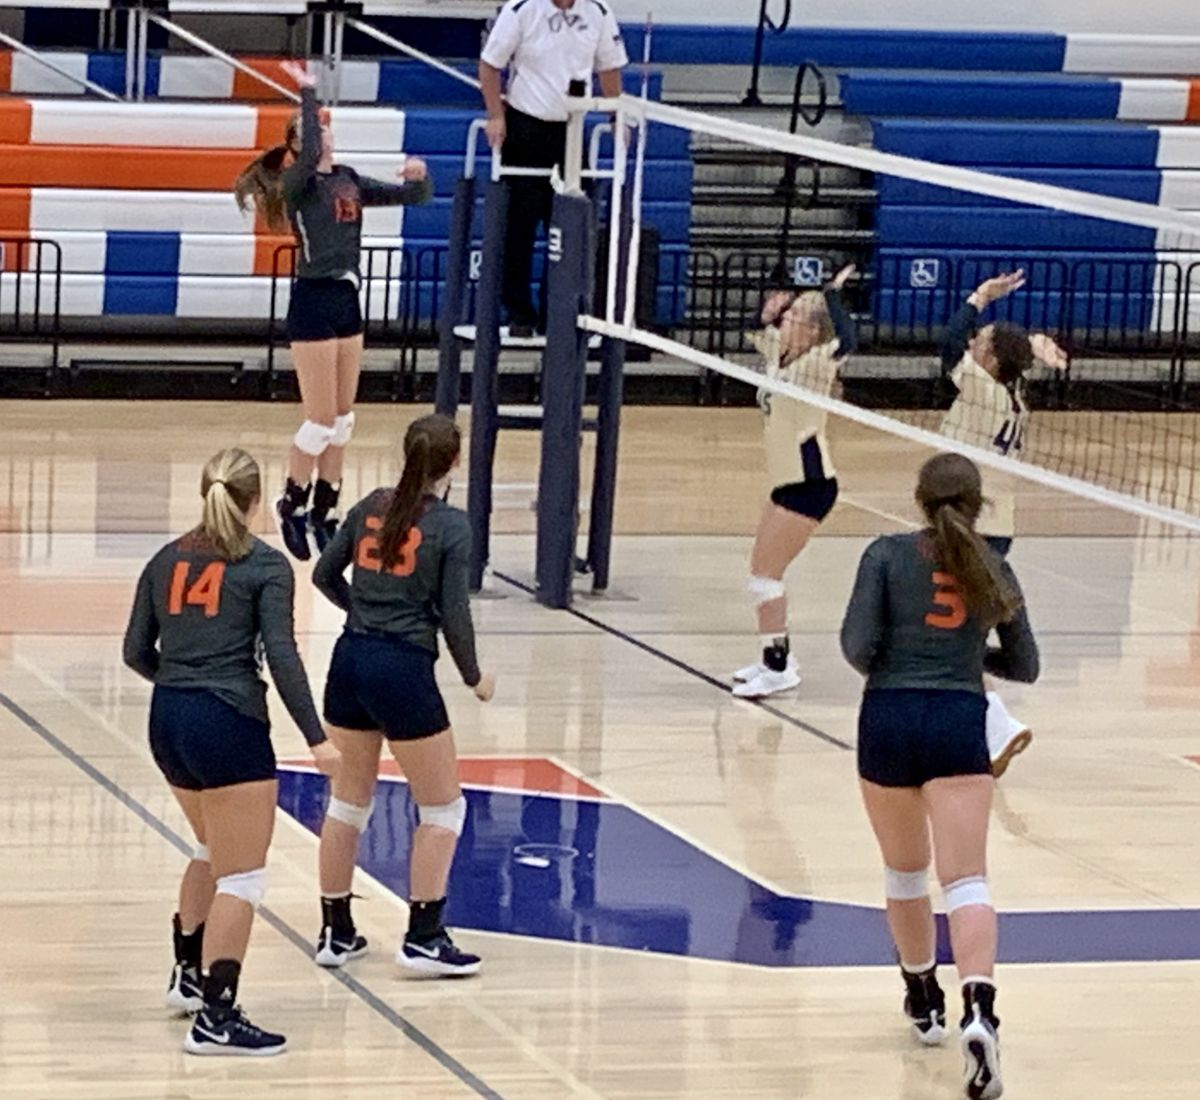 Pin By Deborah On Life In Volleyball With Kim Mathes Moore Female Volleyball Players Volleyball Players Volleyball